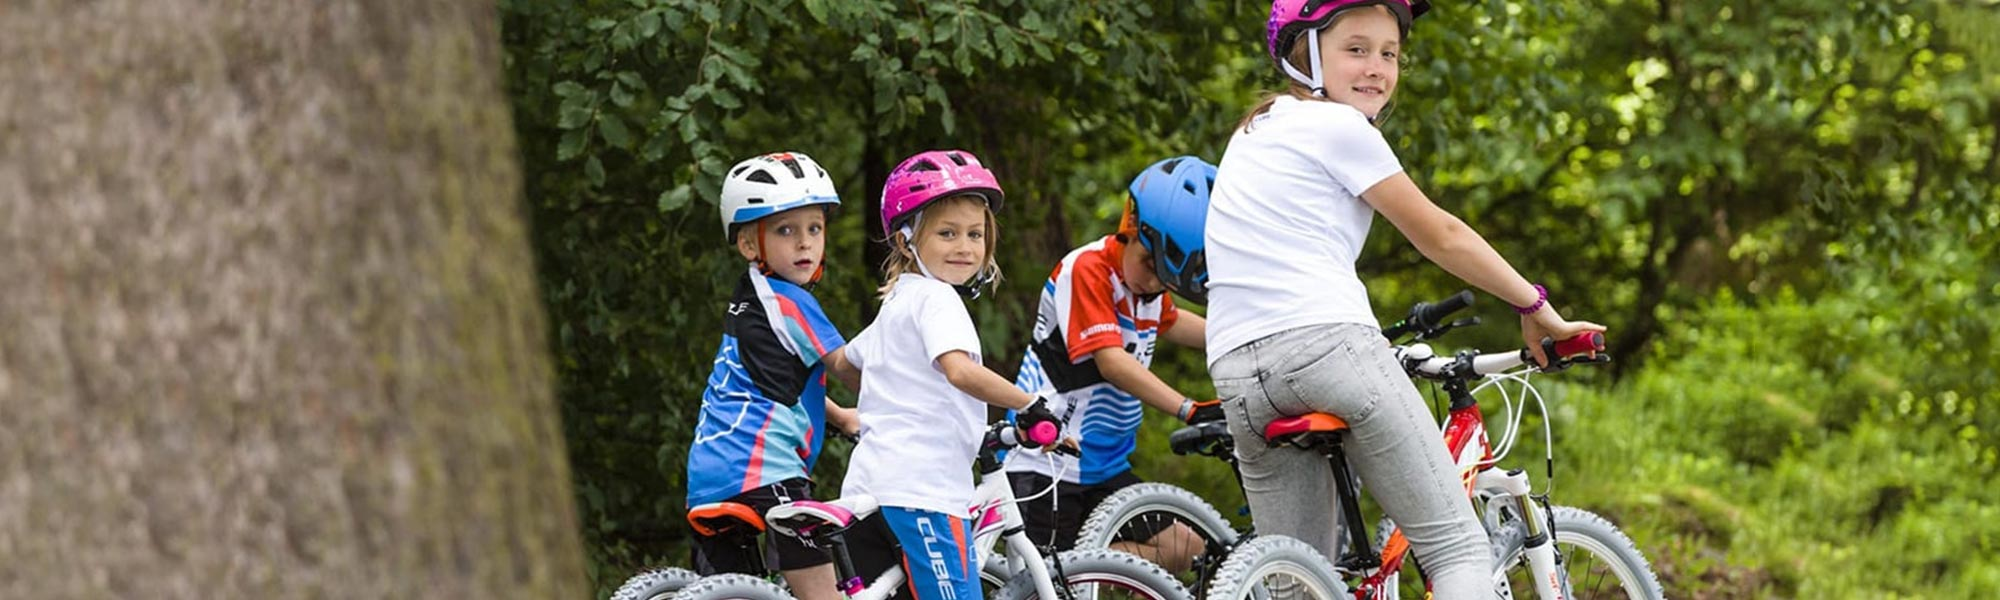 How to choose the best kids bike for riding to school